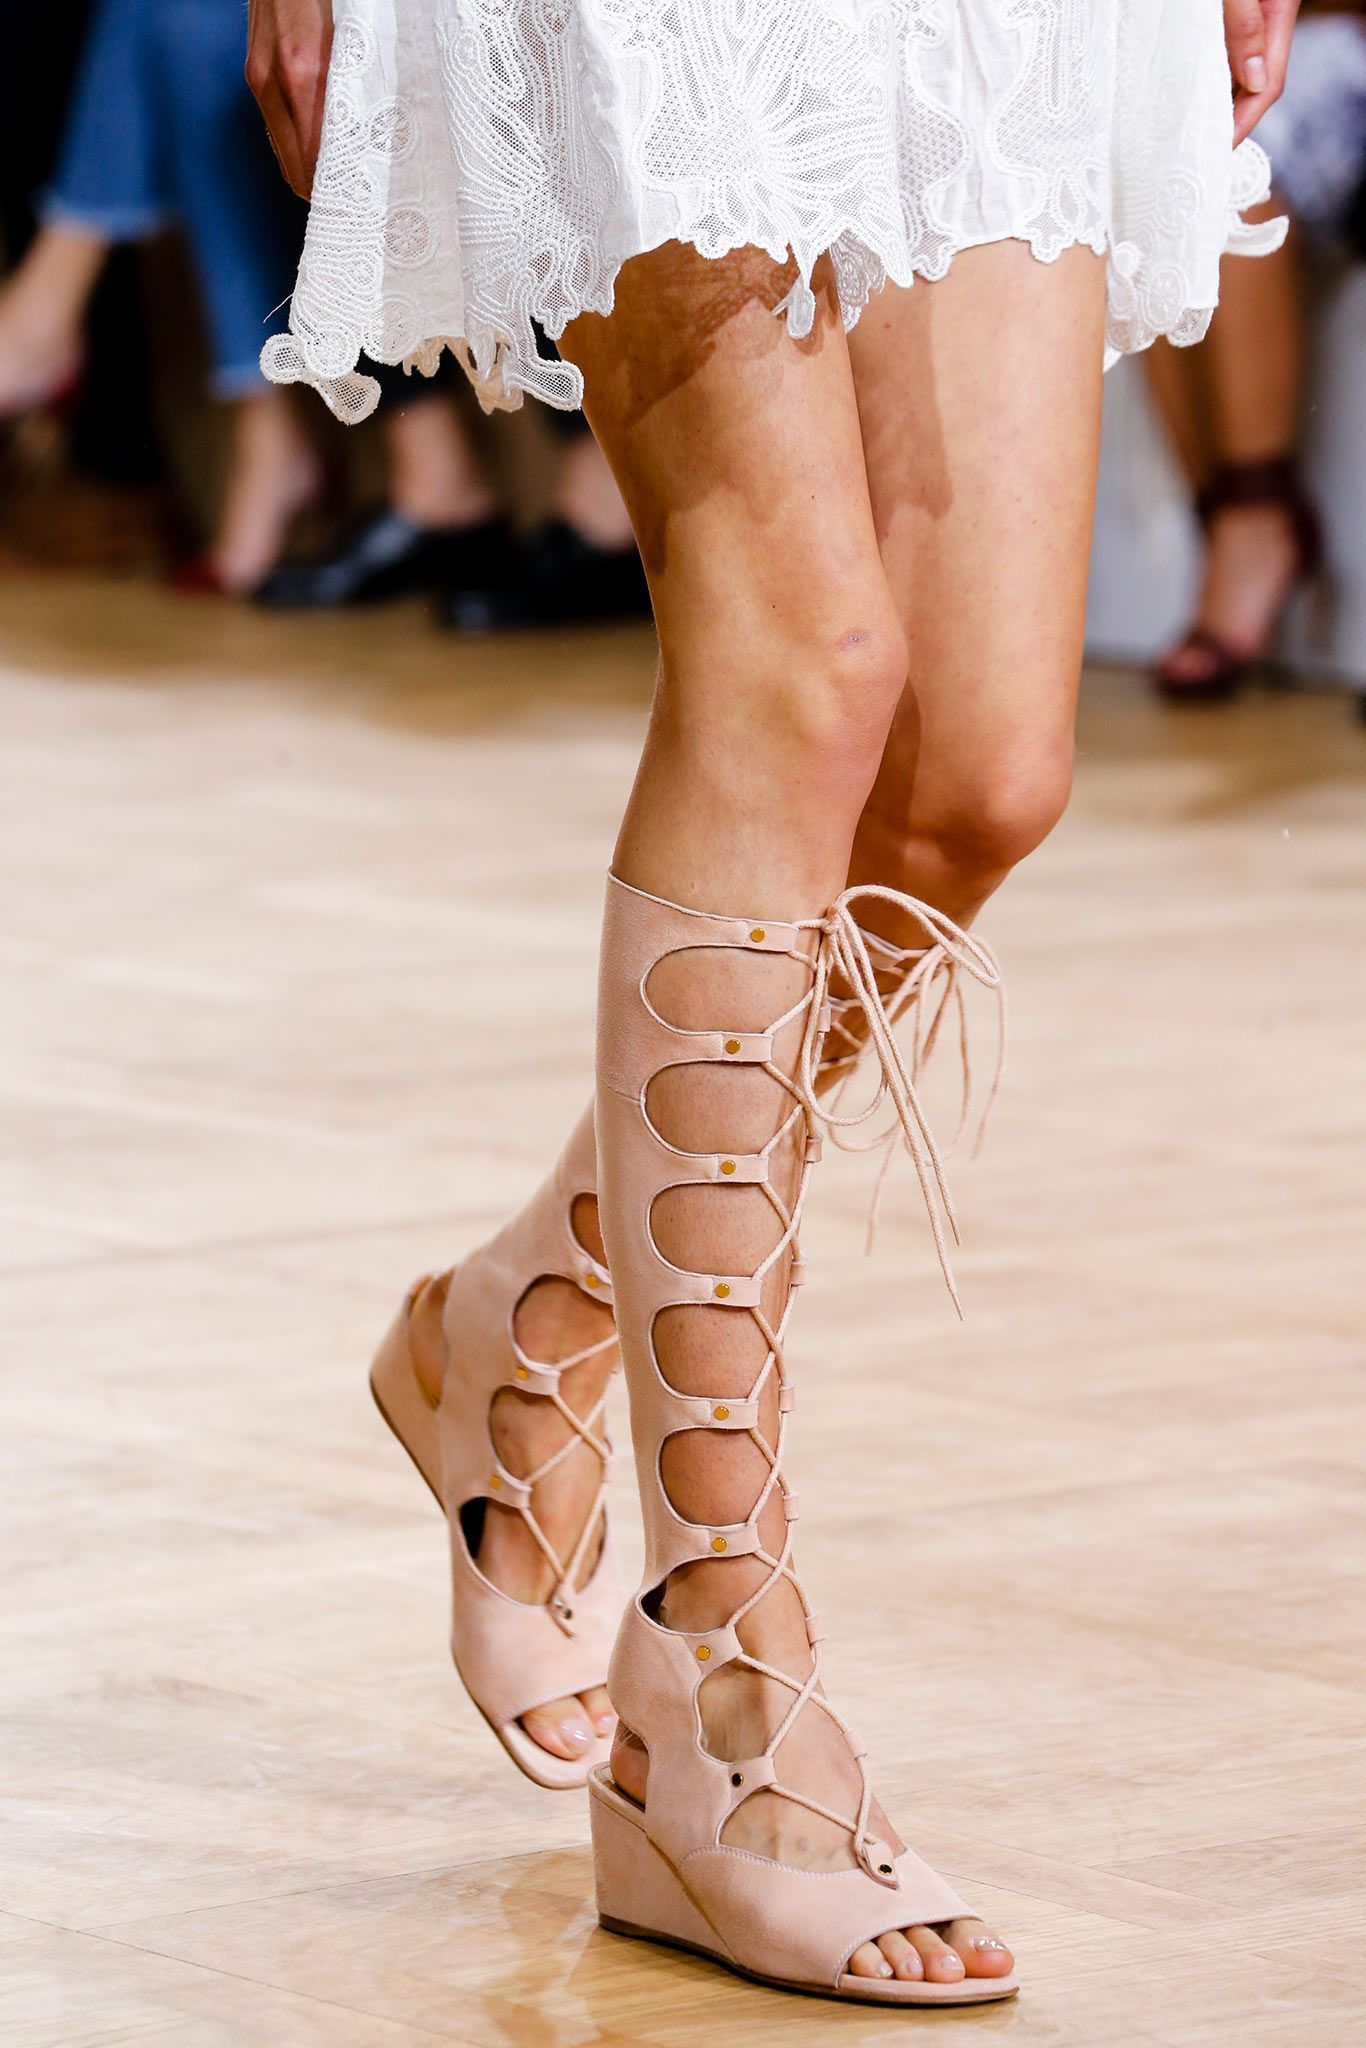 55905fea2 Chloé Spring 2015 Ready-to-Wear - Details - Gallery - Look 87 - Style.com I  want nude, with a slight wedge but shorter lace up.